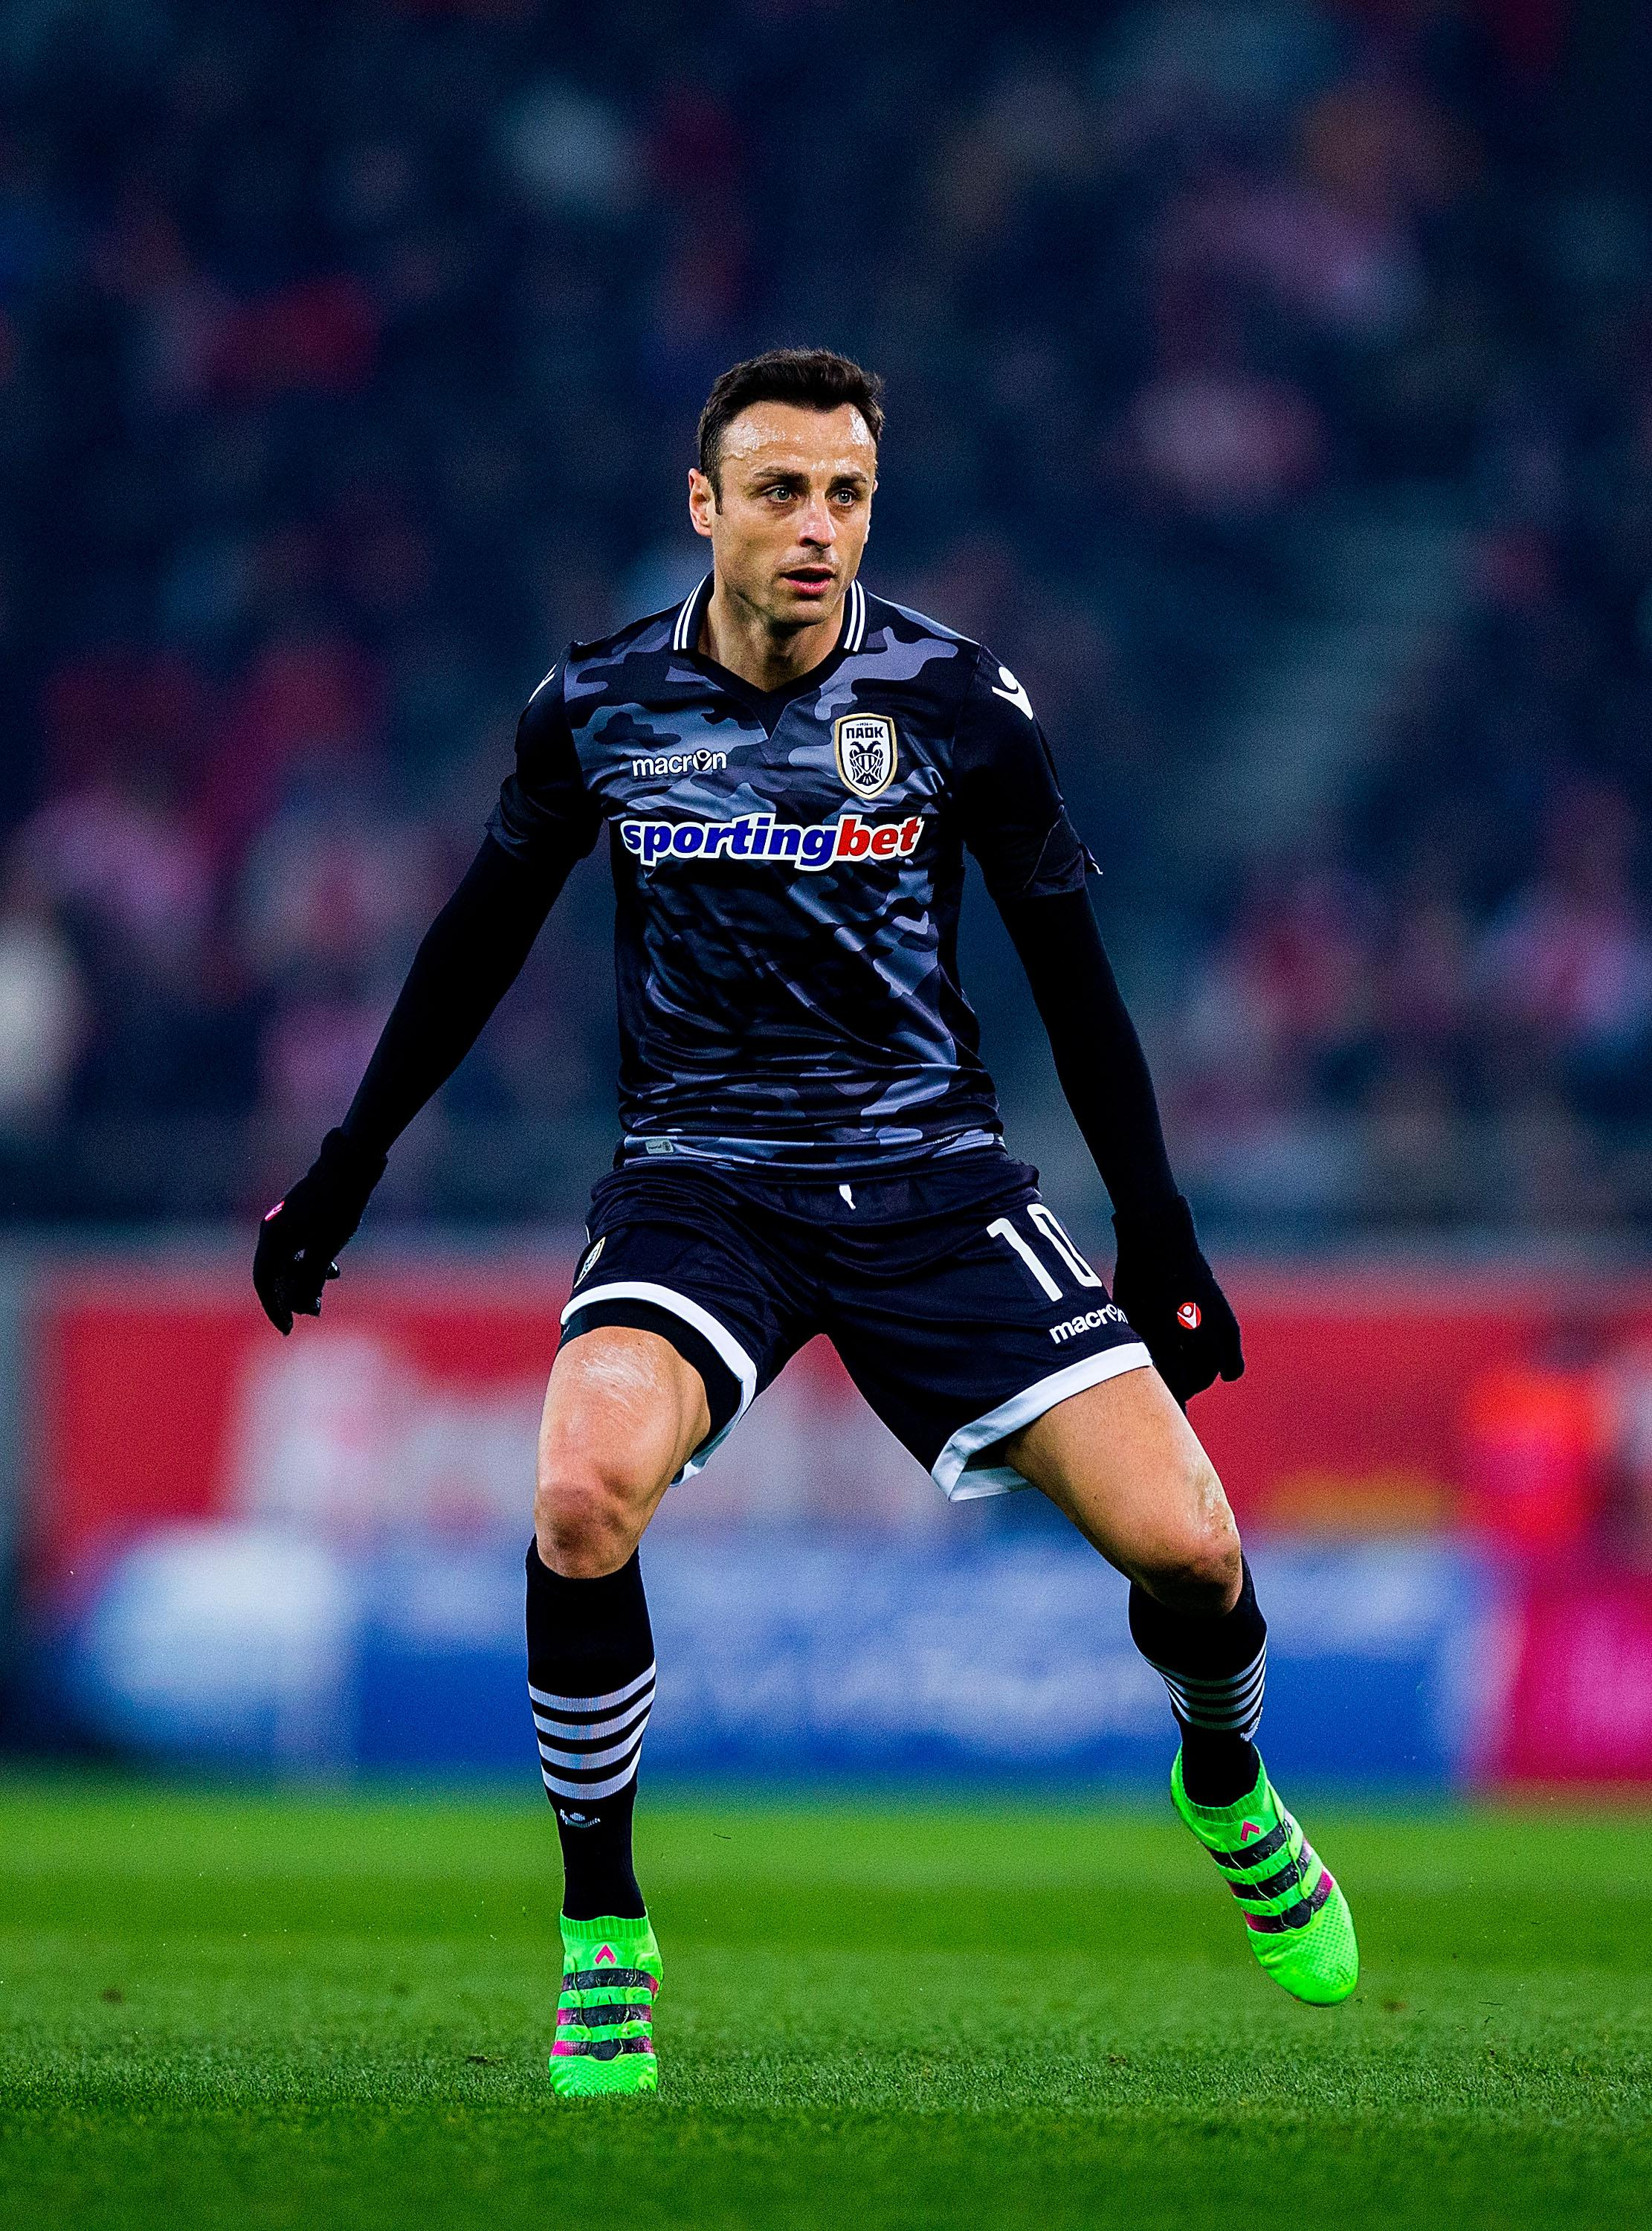 Striker Dimitar Berbatov played in Germany, England, France and is now in India